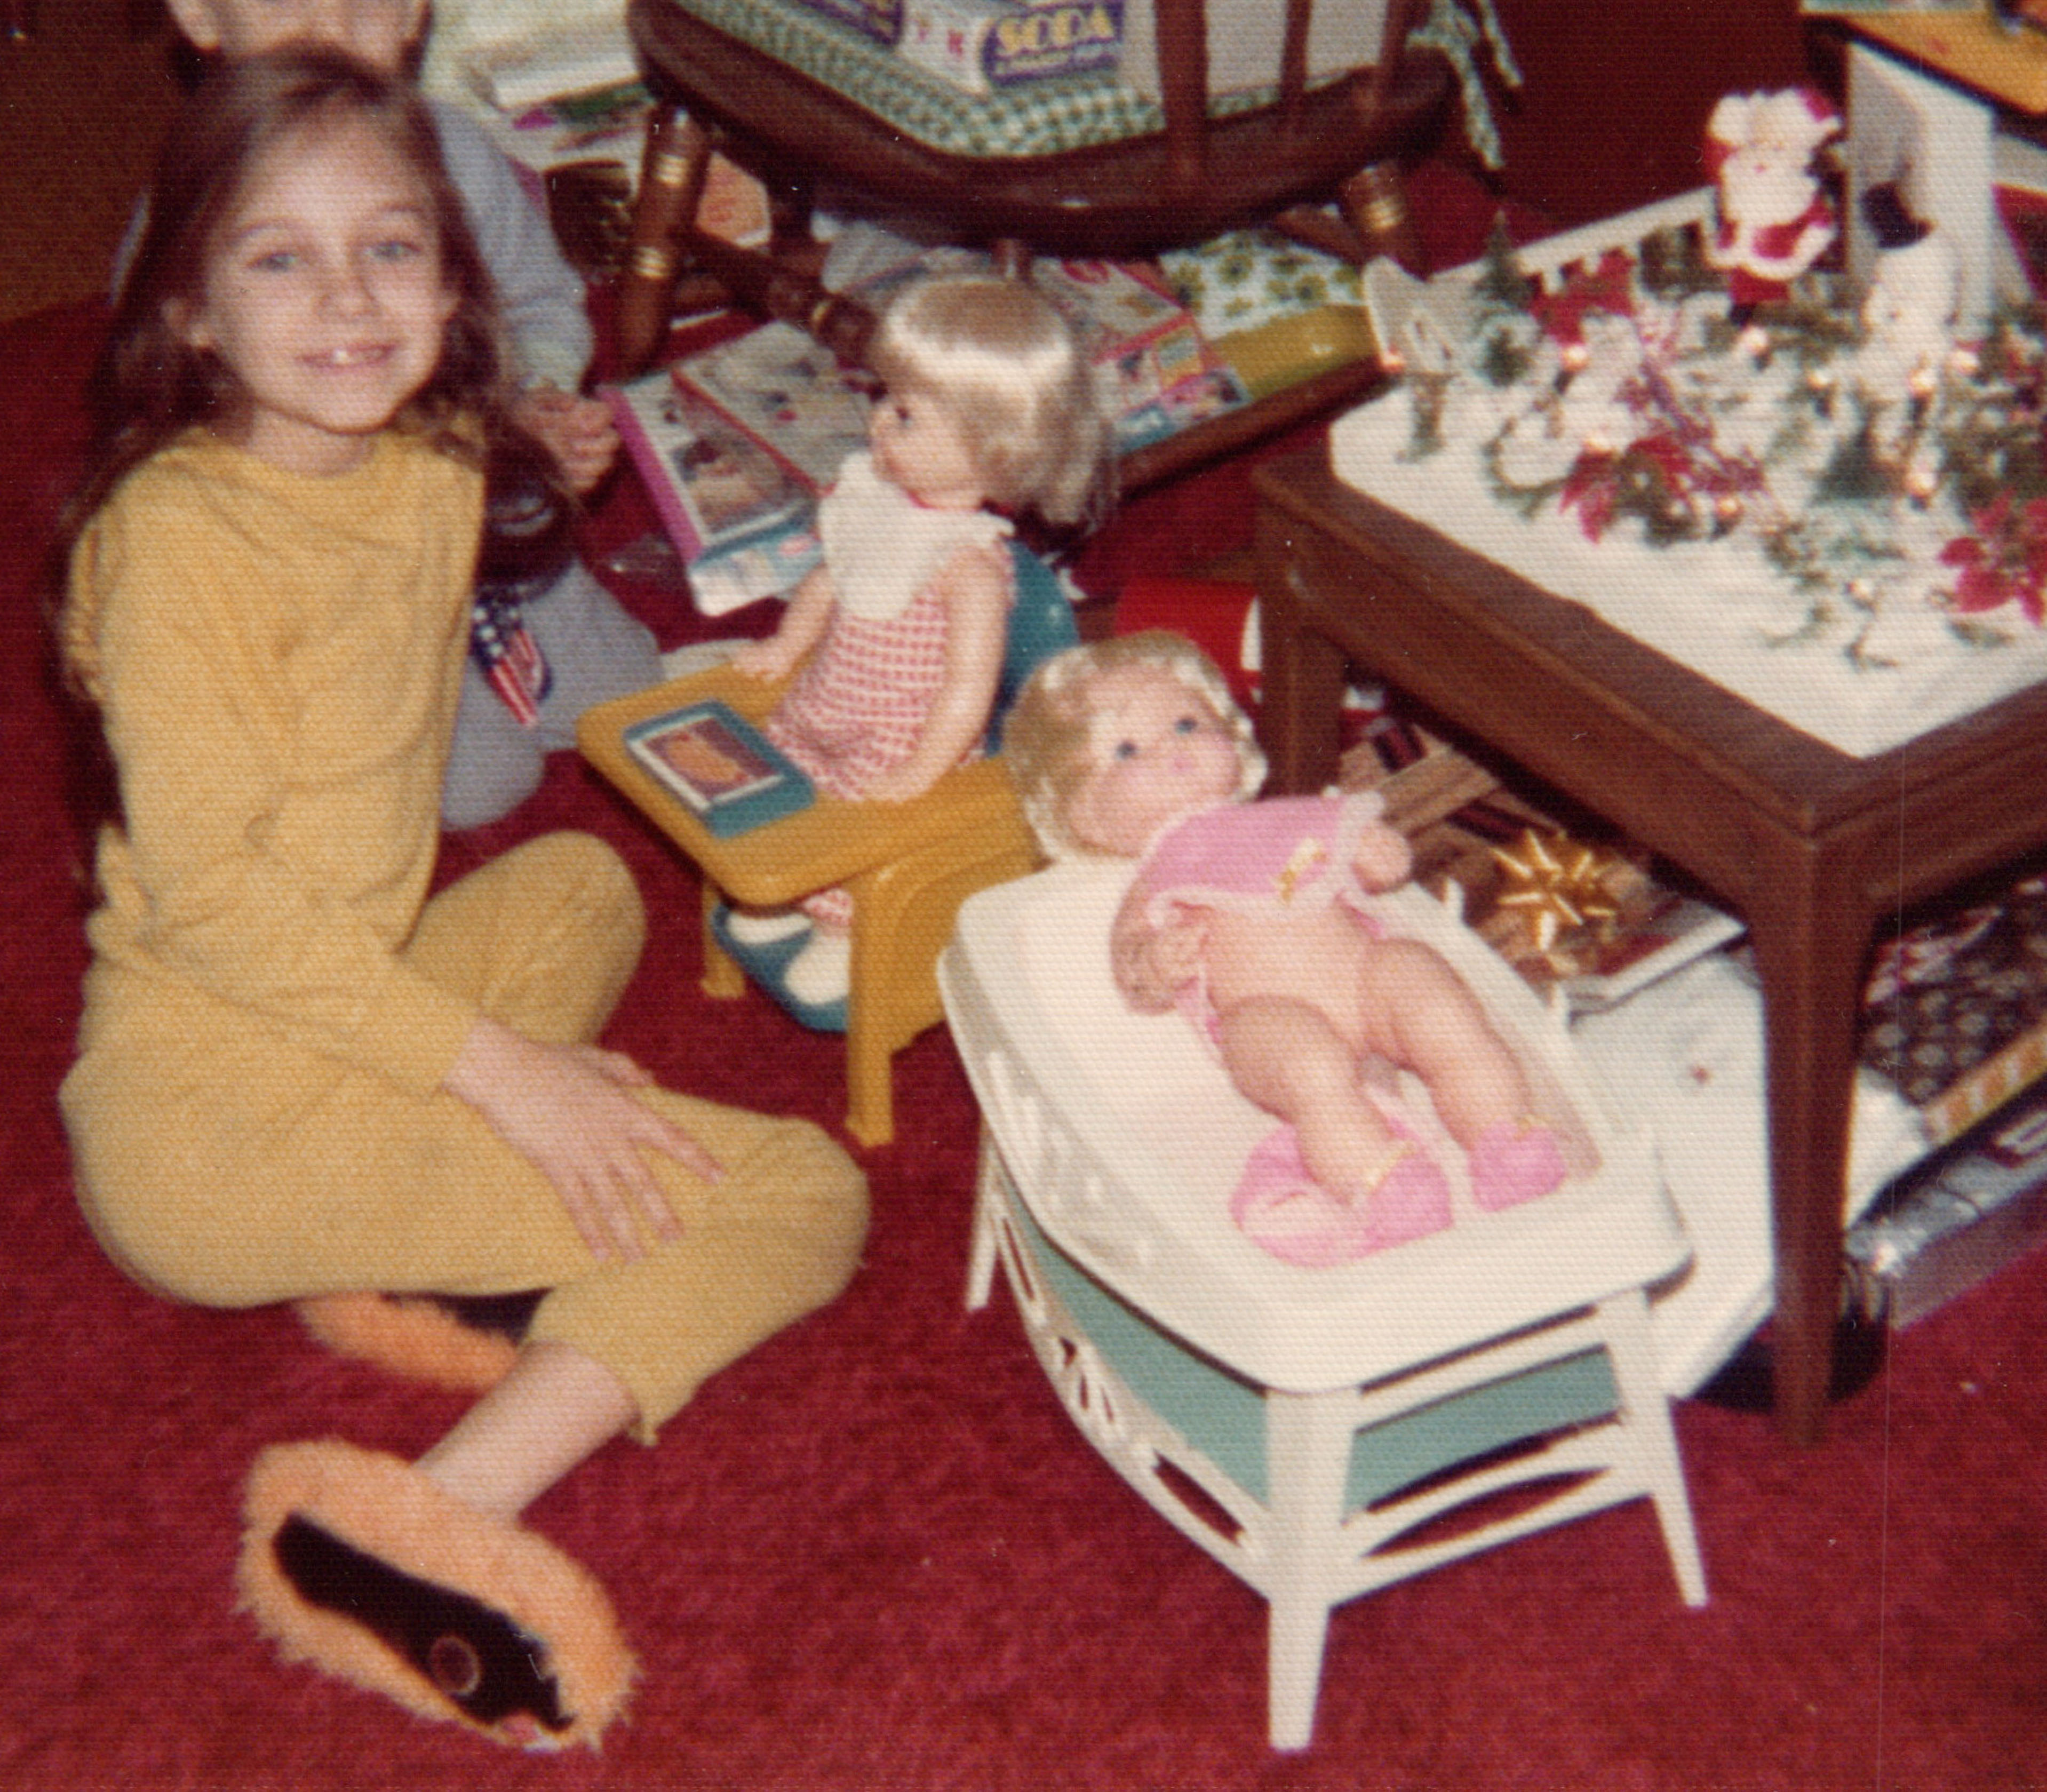 A photo of a young girl in the living room, which was a place to share family stories.